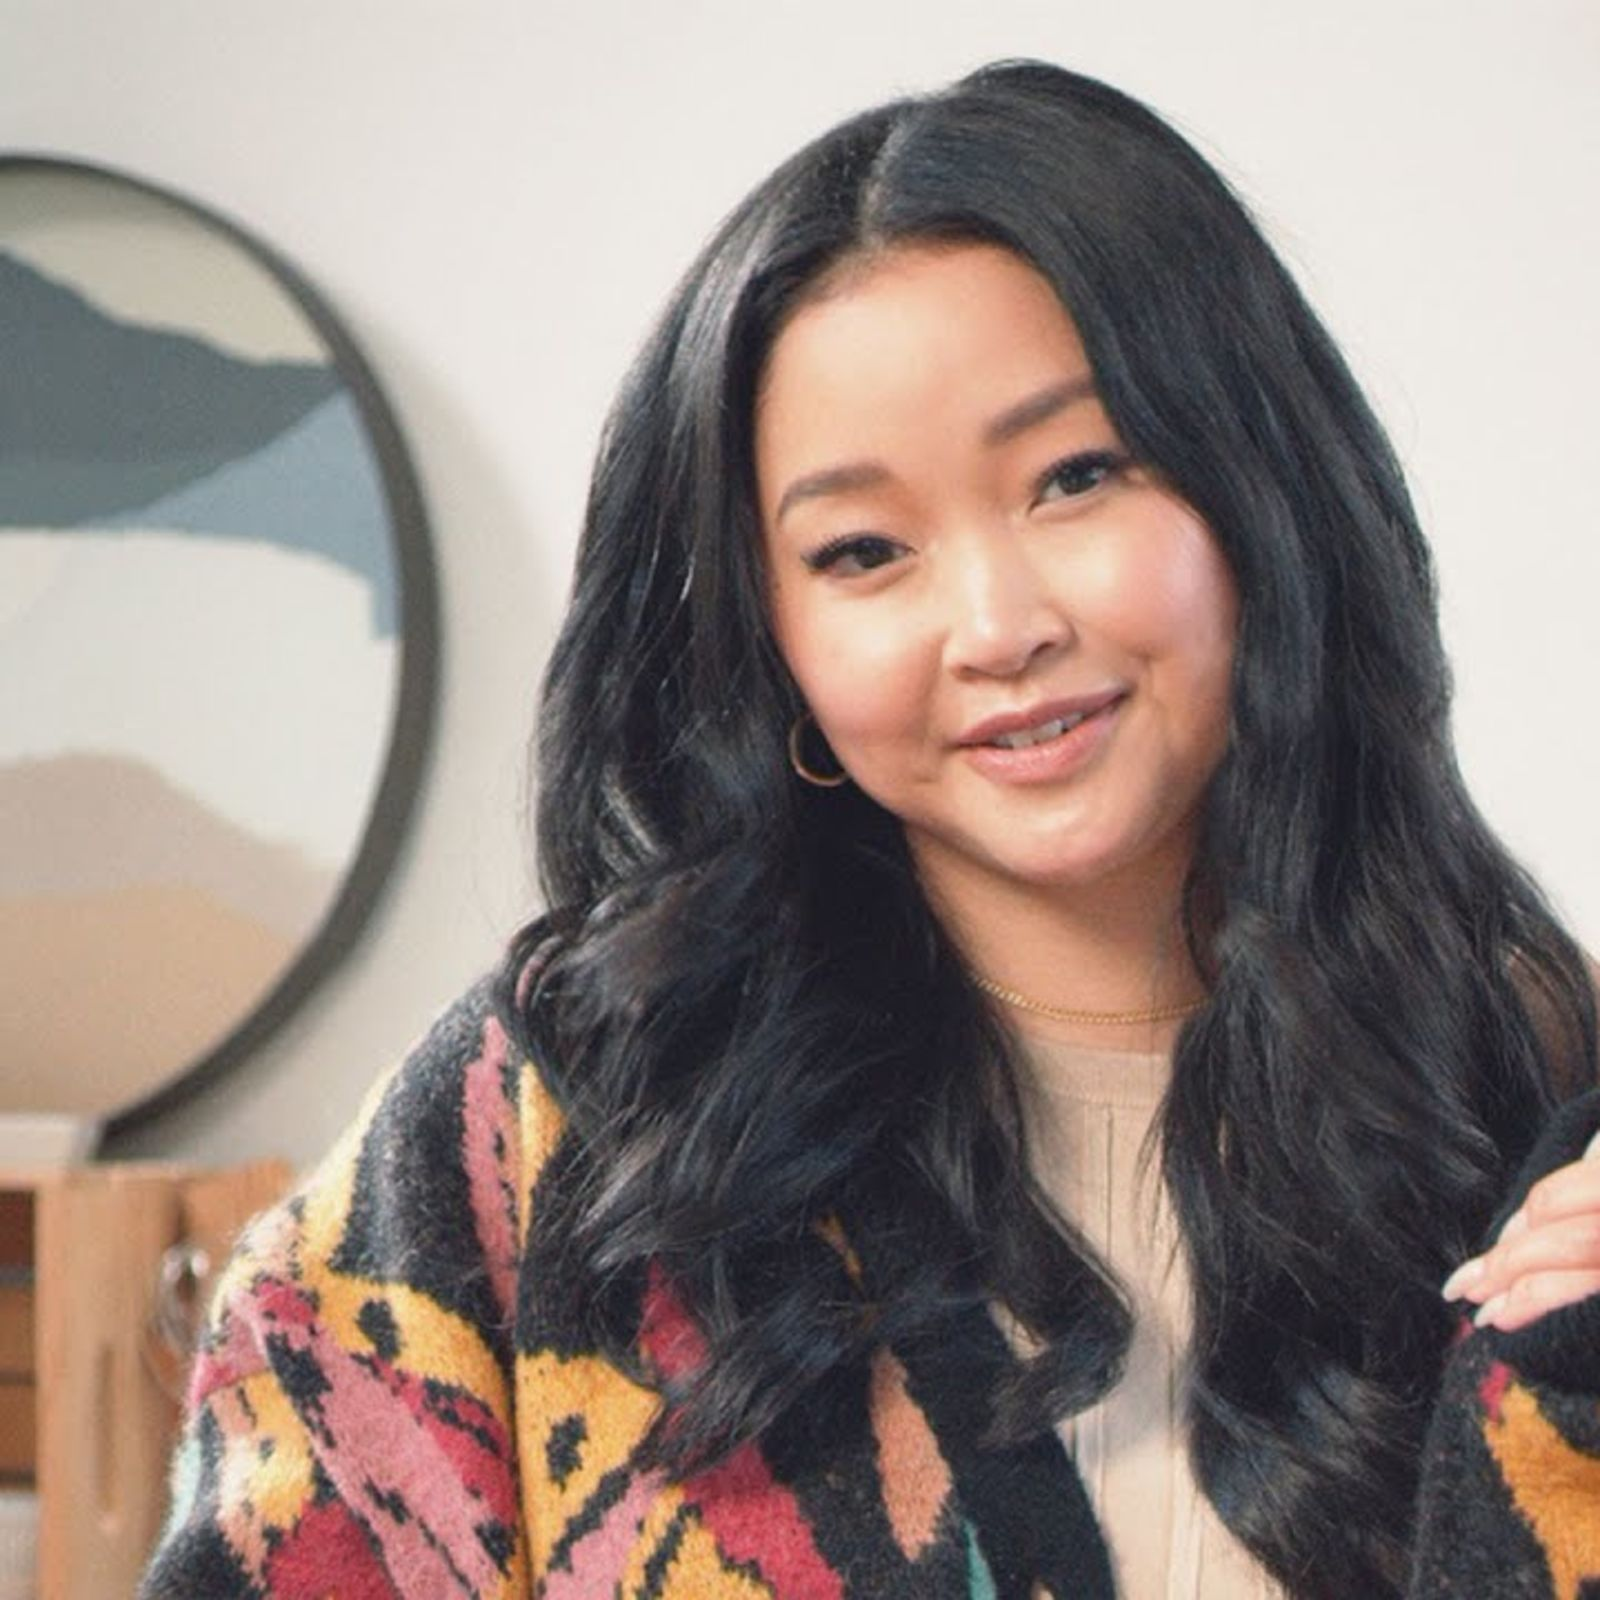 Actor Lana Condor Makes Potato Eye-Patches With Her Dad | Family Secrets